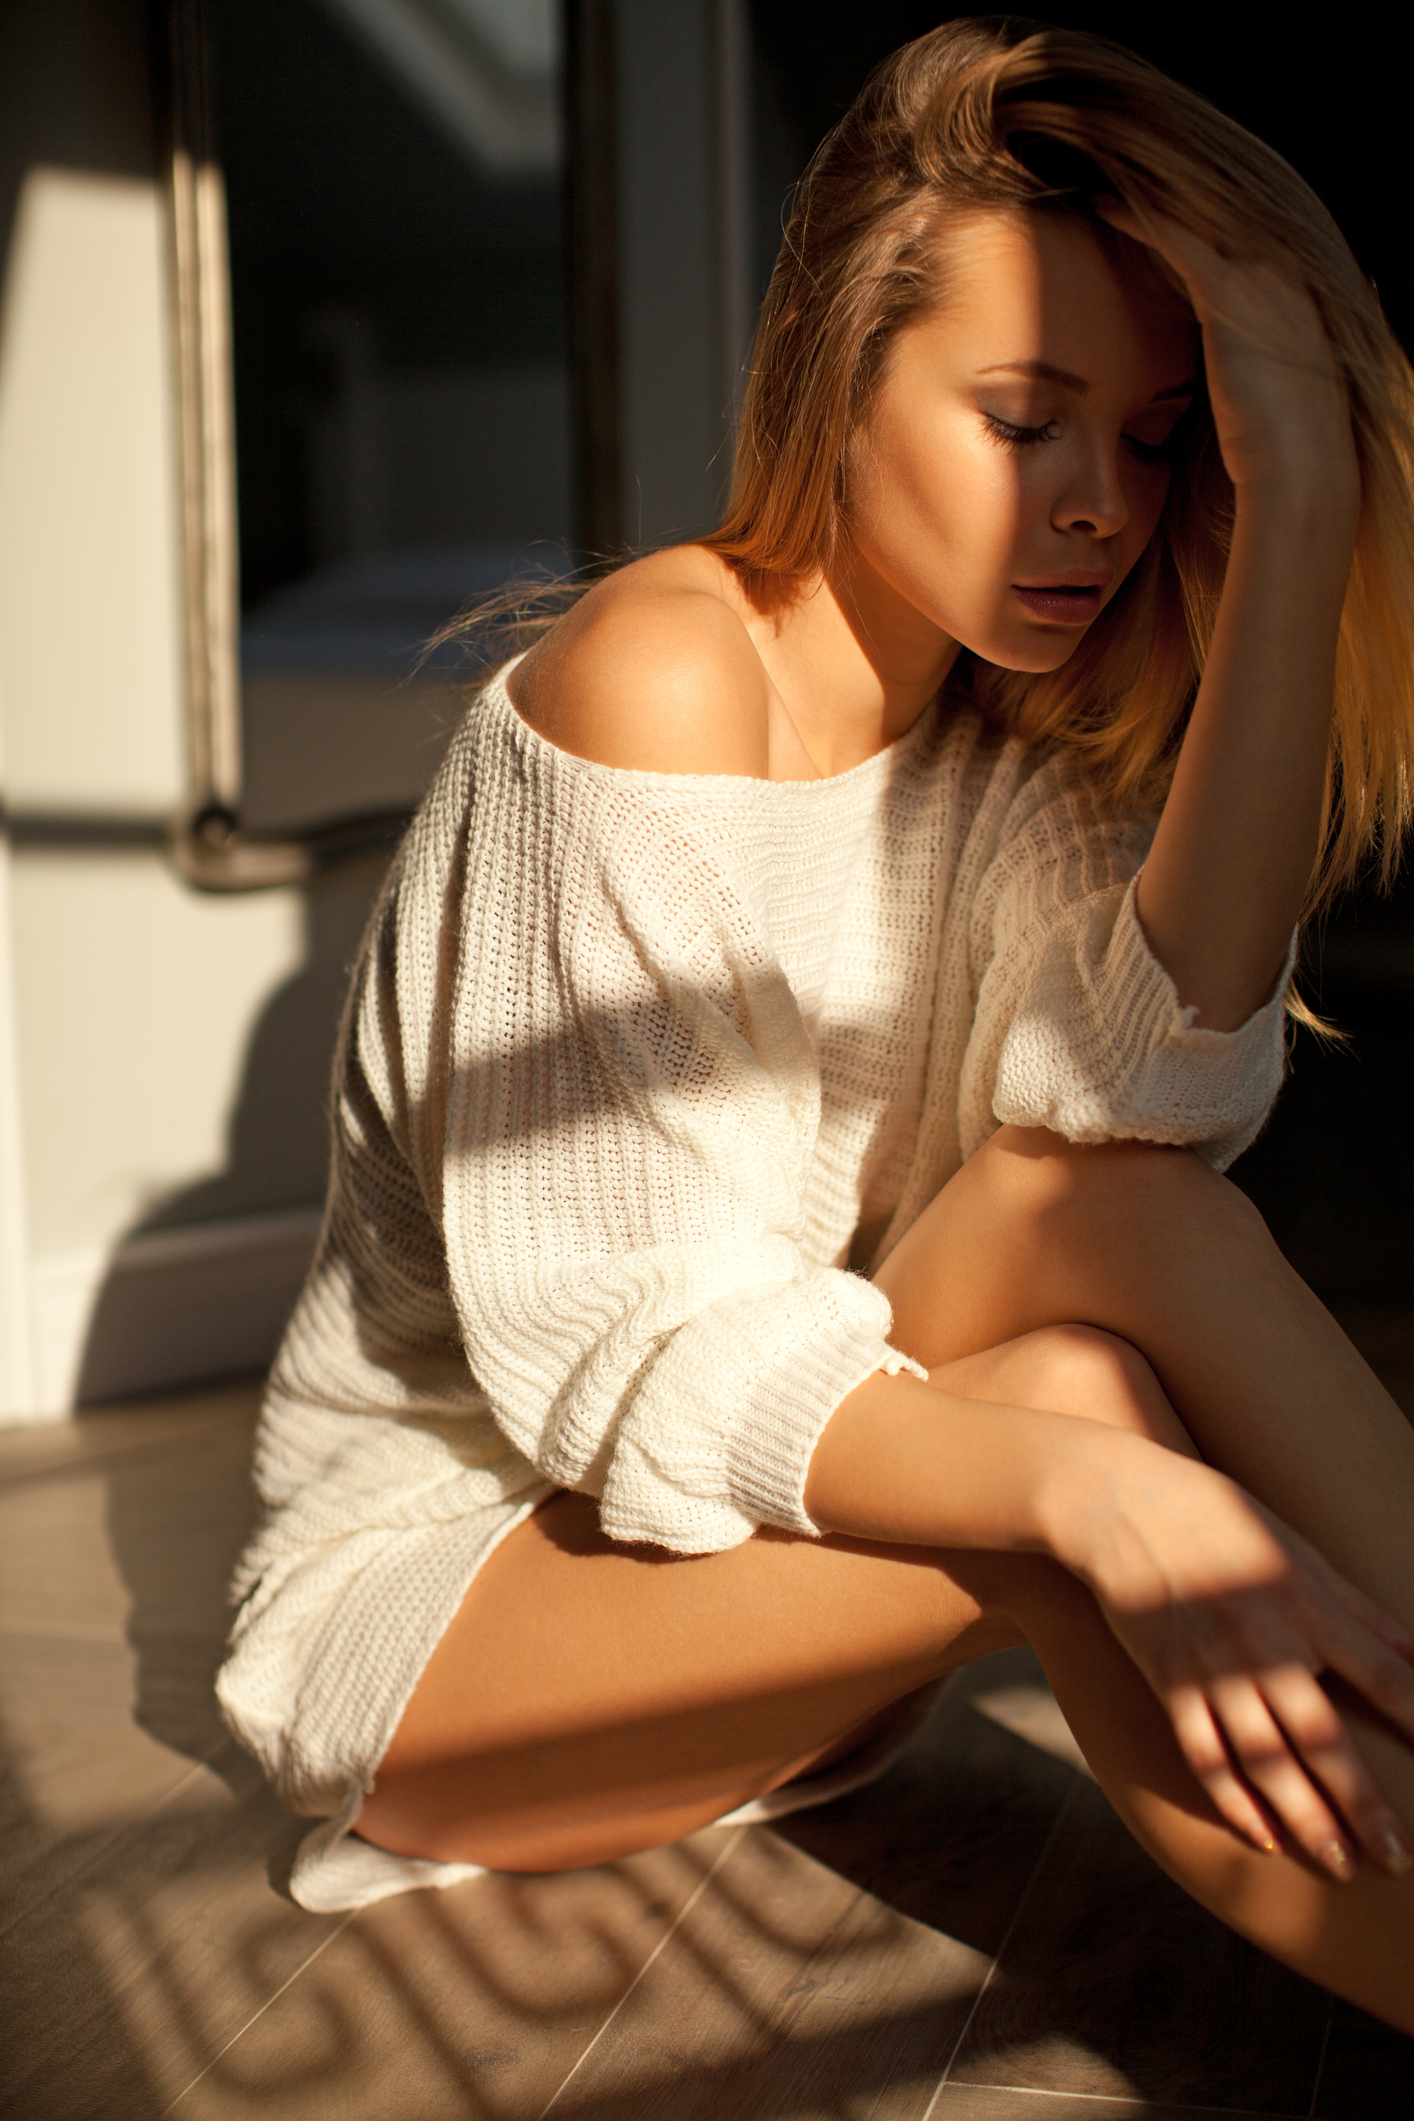 Beautyful young blond woman sitting on the floor and wearing white casual sweater. She is very sensual and attractive.